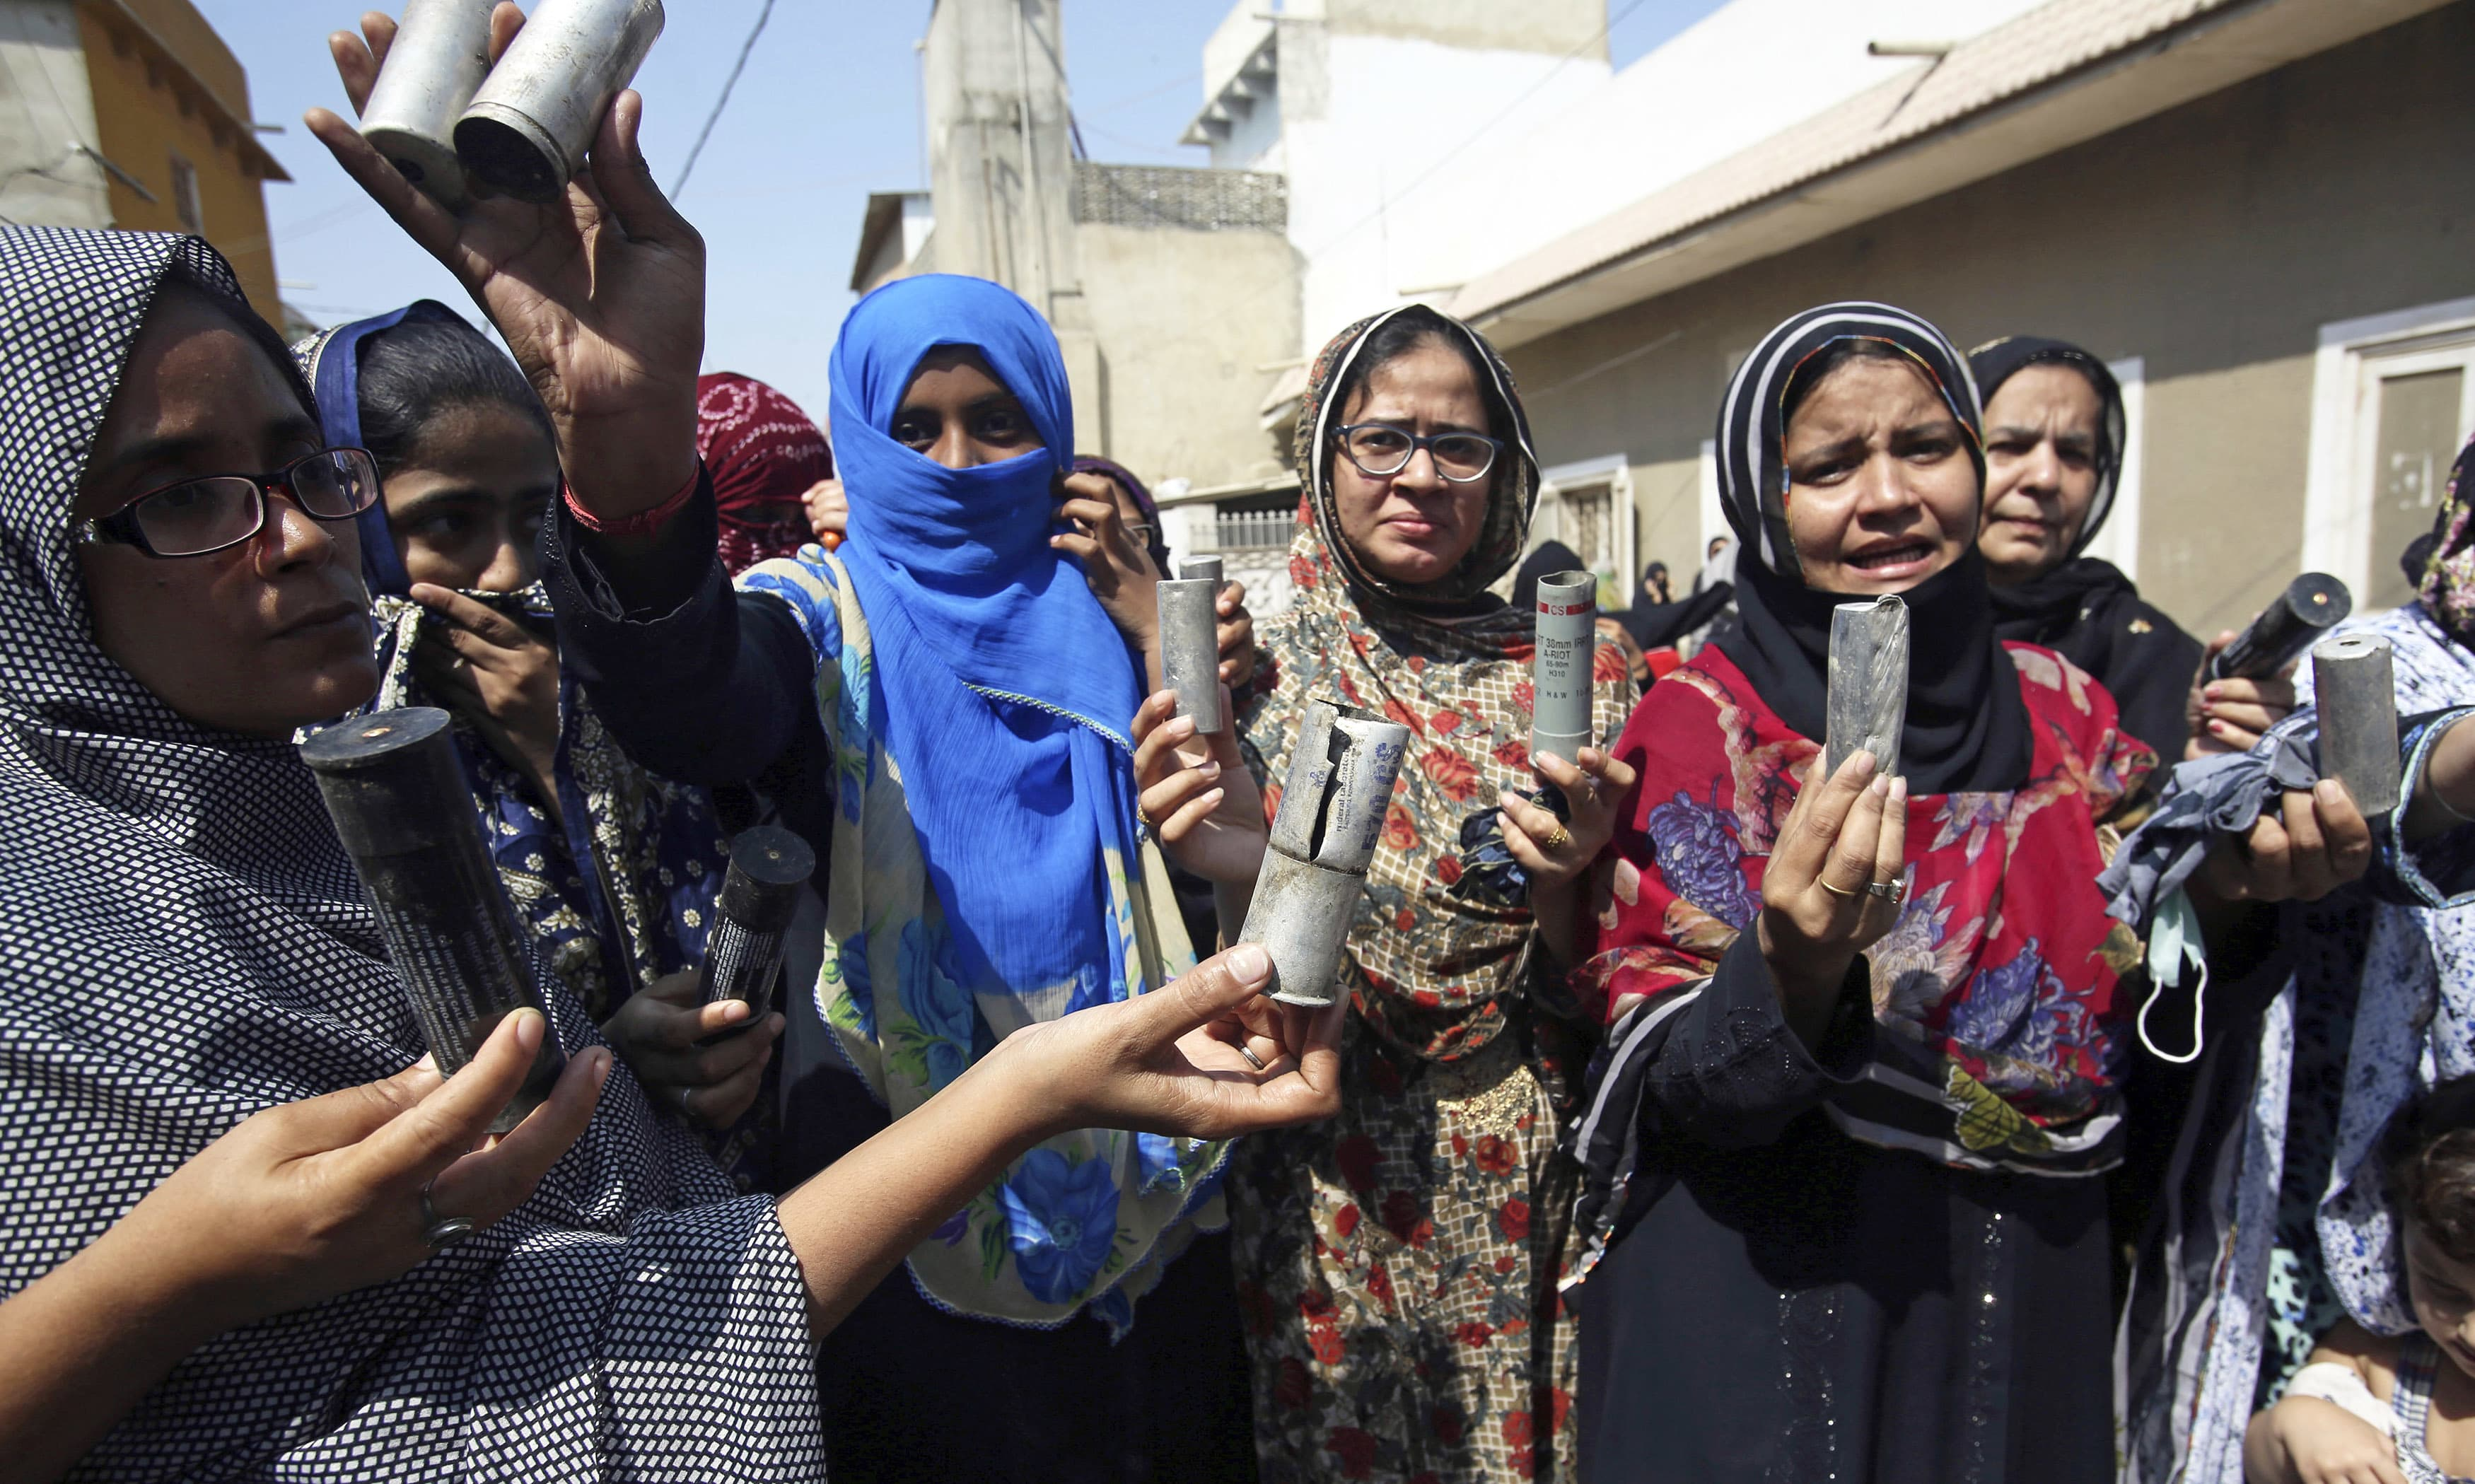 Residents show tear gas shells fired by police to disperse protesters. —AP